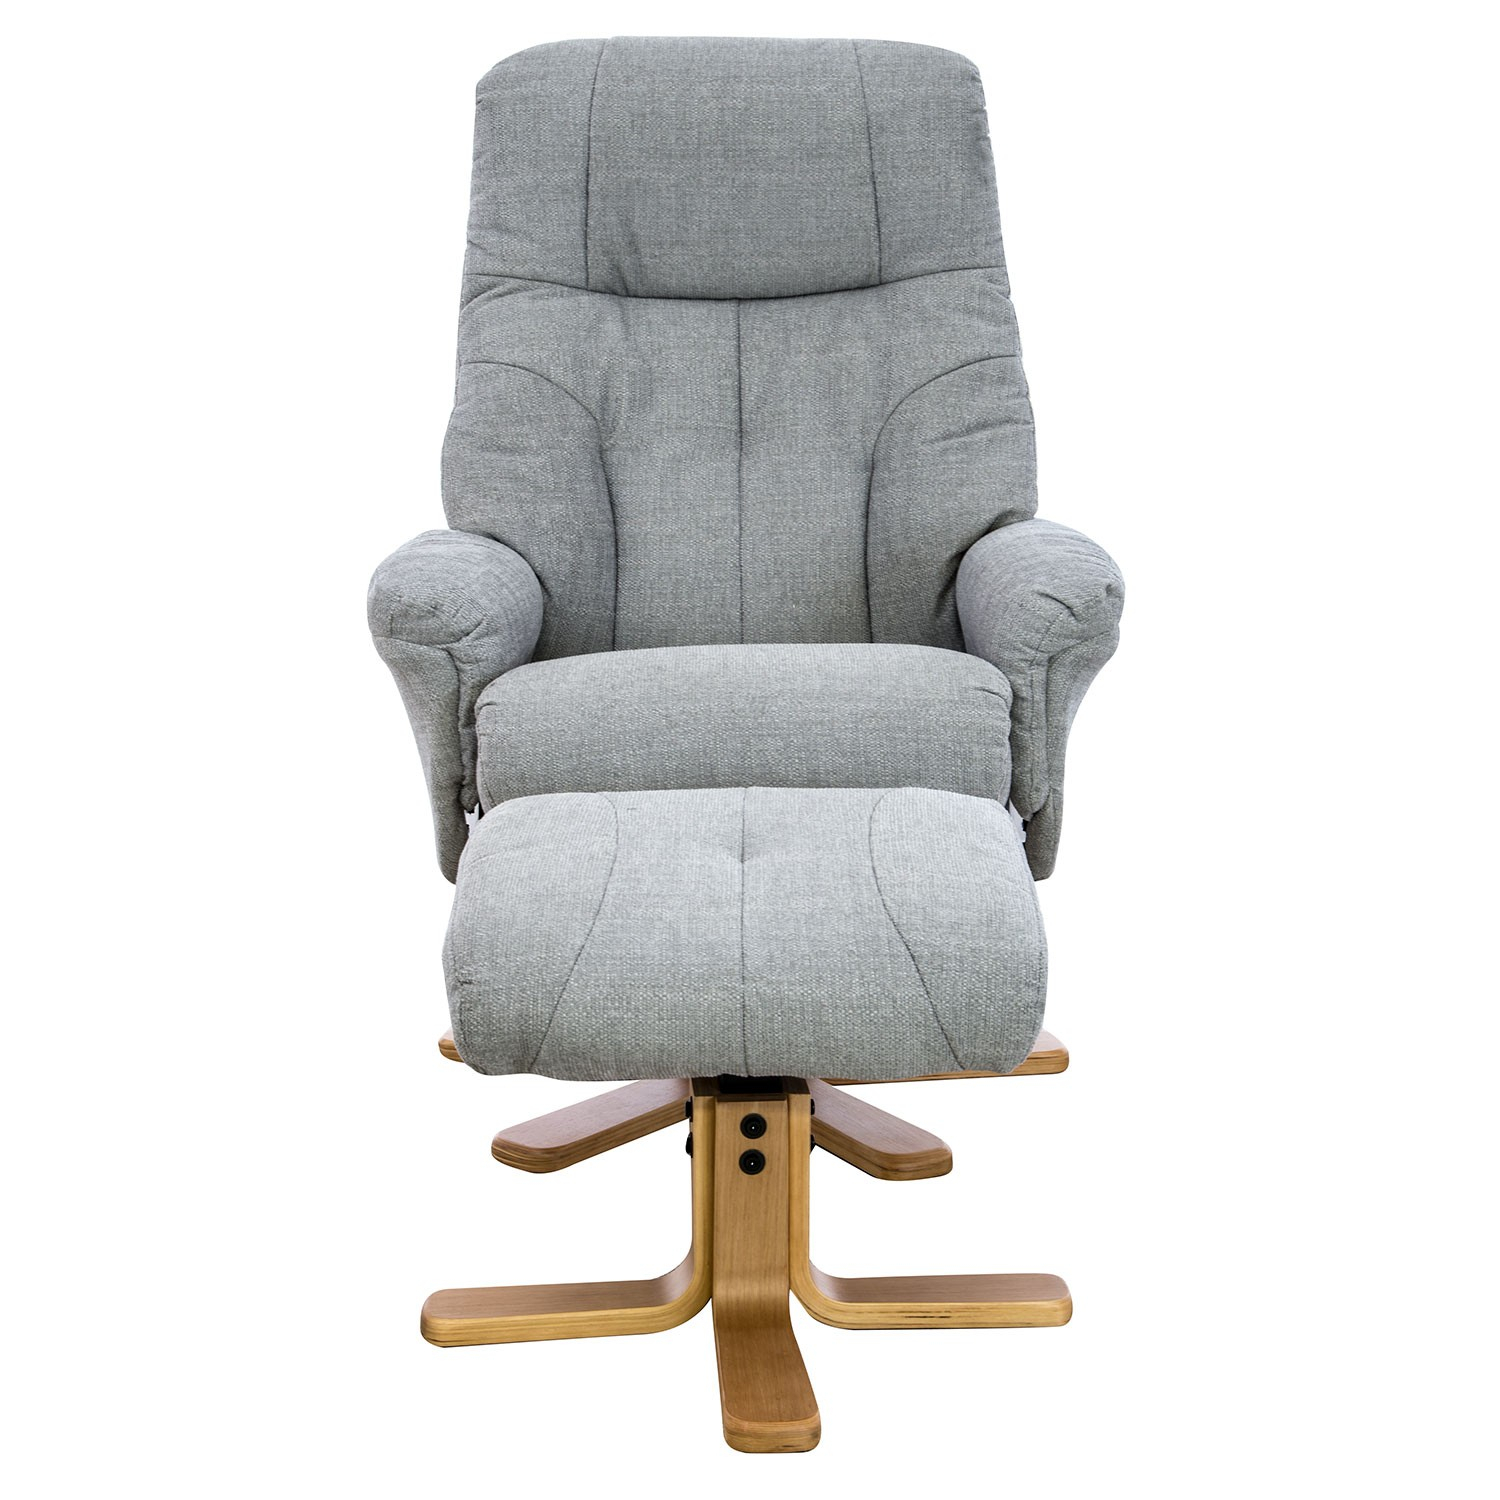 Casa Trento Swivel Recliner And Footstool | Leekes With Regard To Decker Ii Fabric Swivel Rocker Recliners (Image 4 of 25)